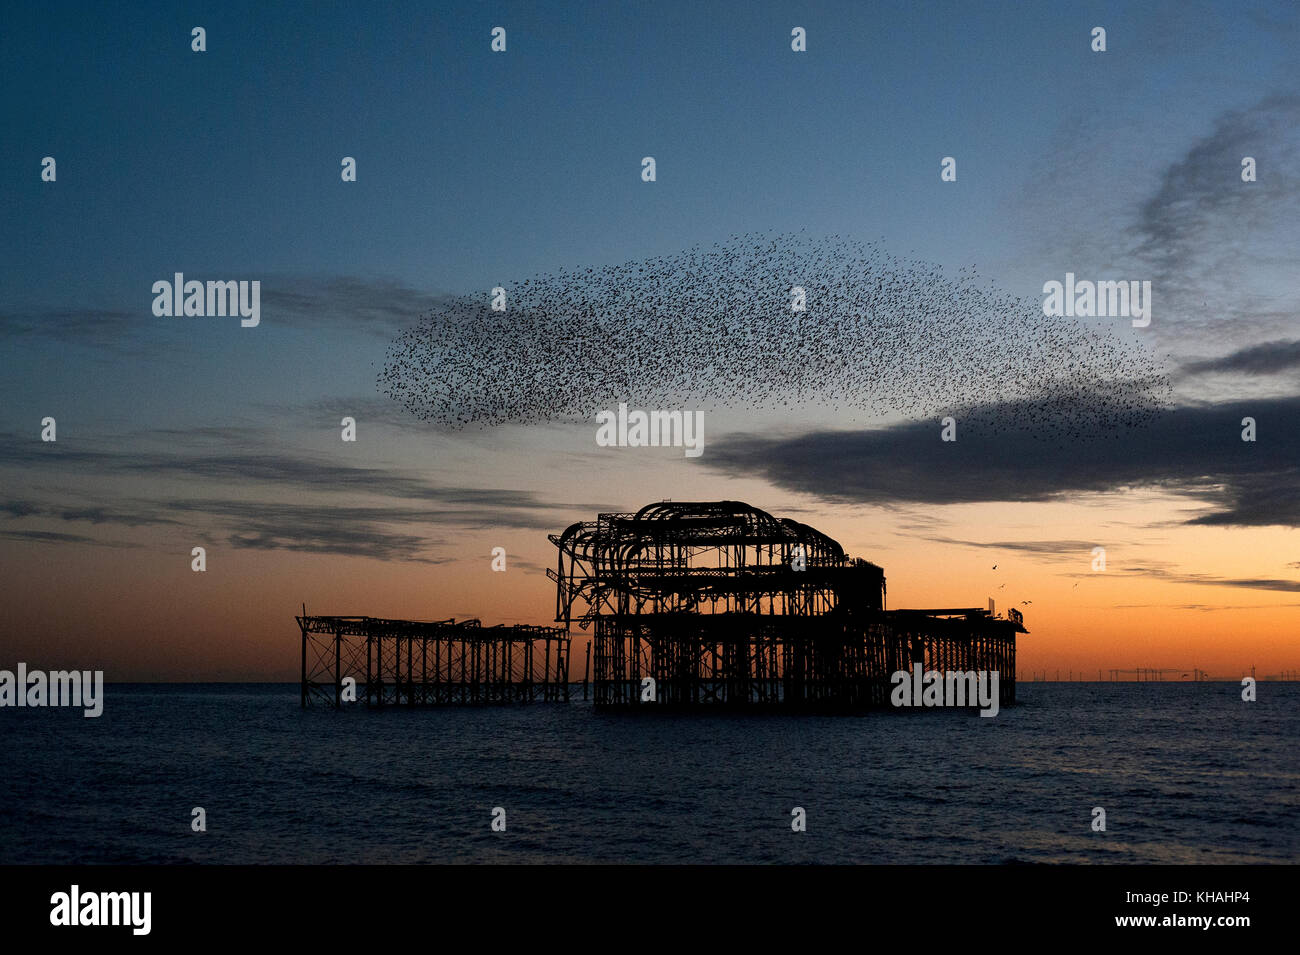 Murmuration over the ruins of Brighton's West Pier on the south coast of England. A flock of starlings swoops in a unified masover the pier at sunset. Stock Photo